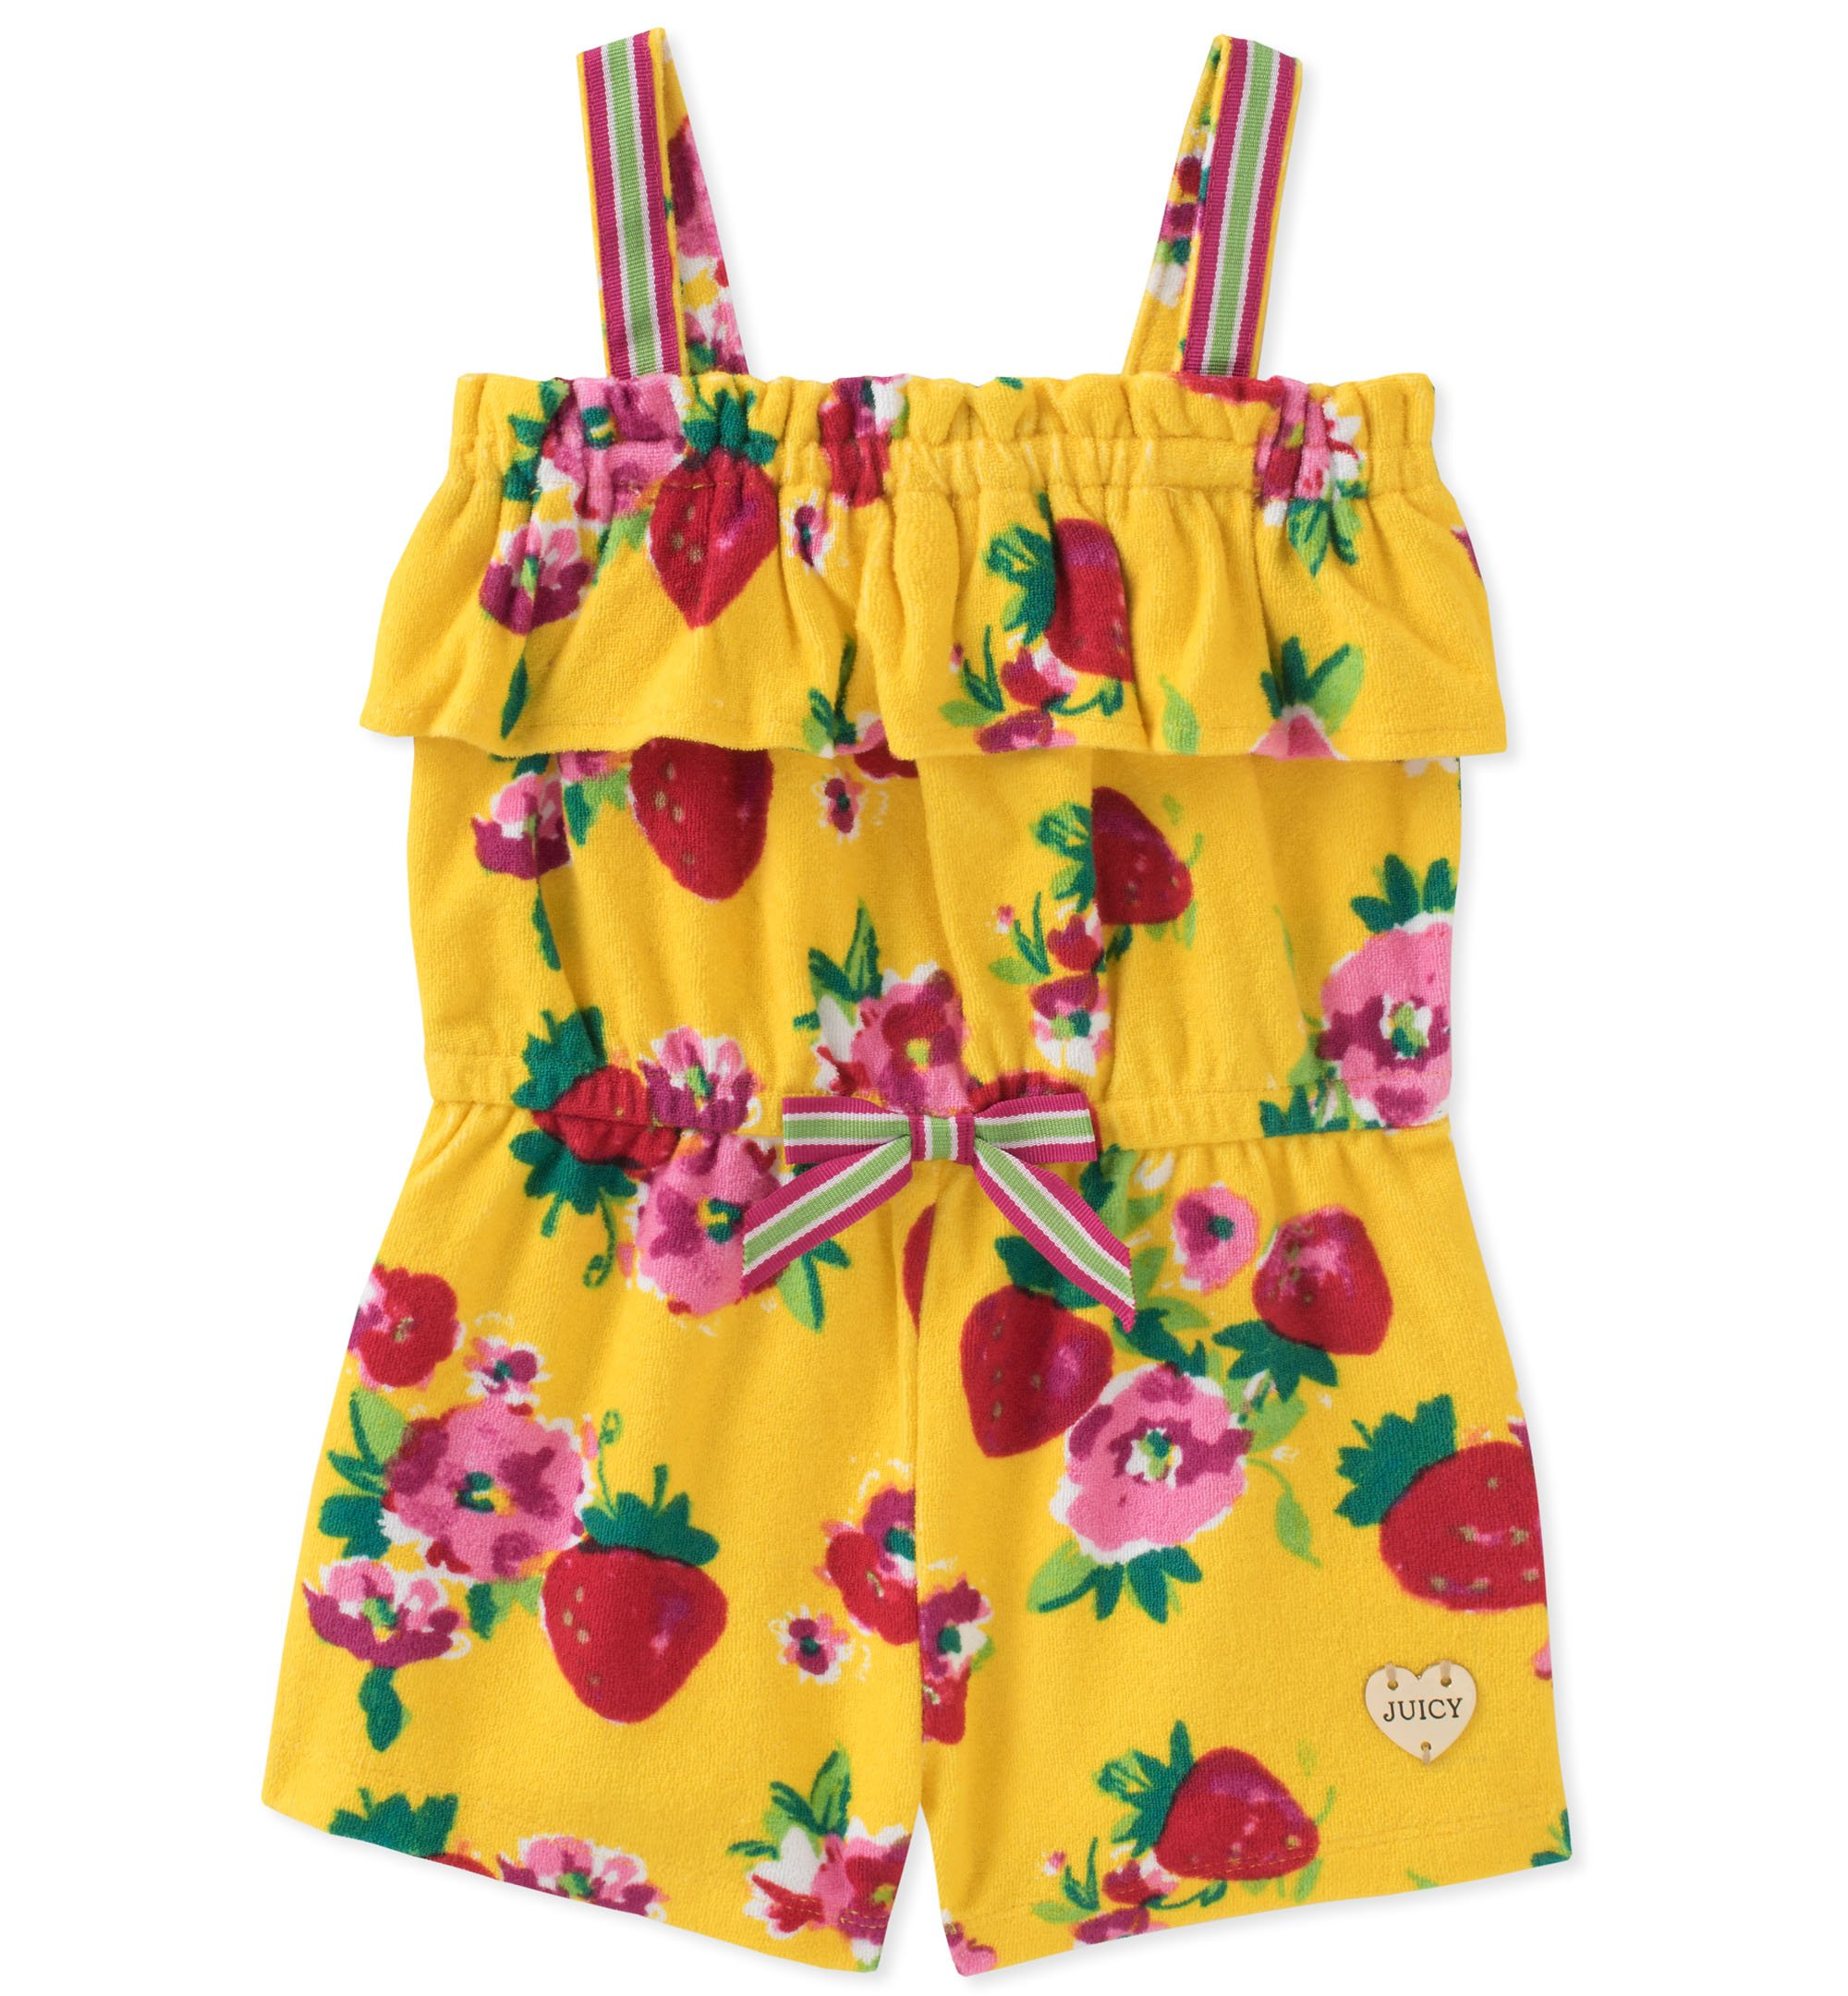 Juicy Couture Girls' Little Romper, Yellow/Print, 5